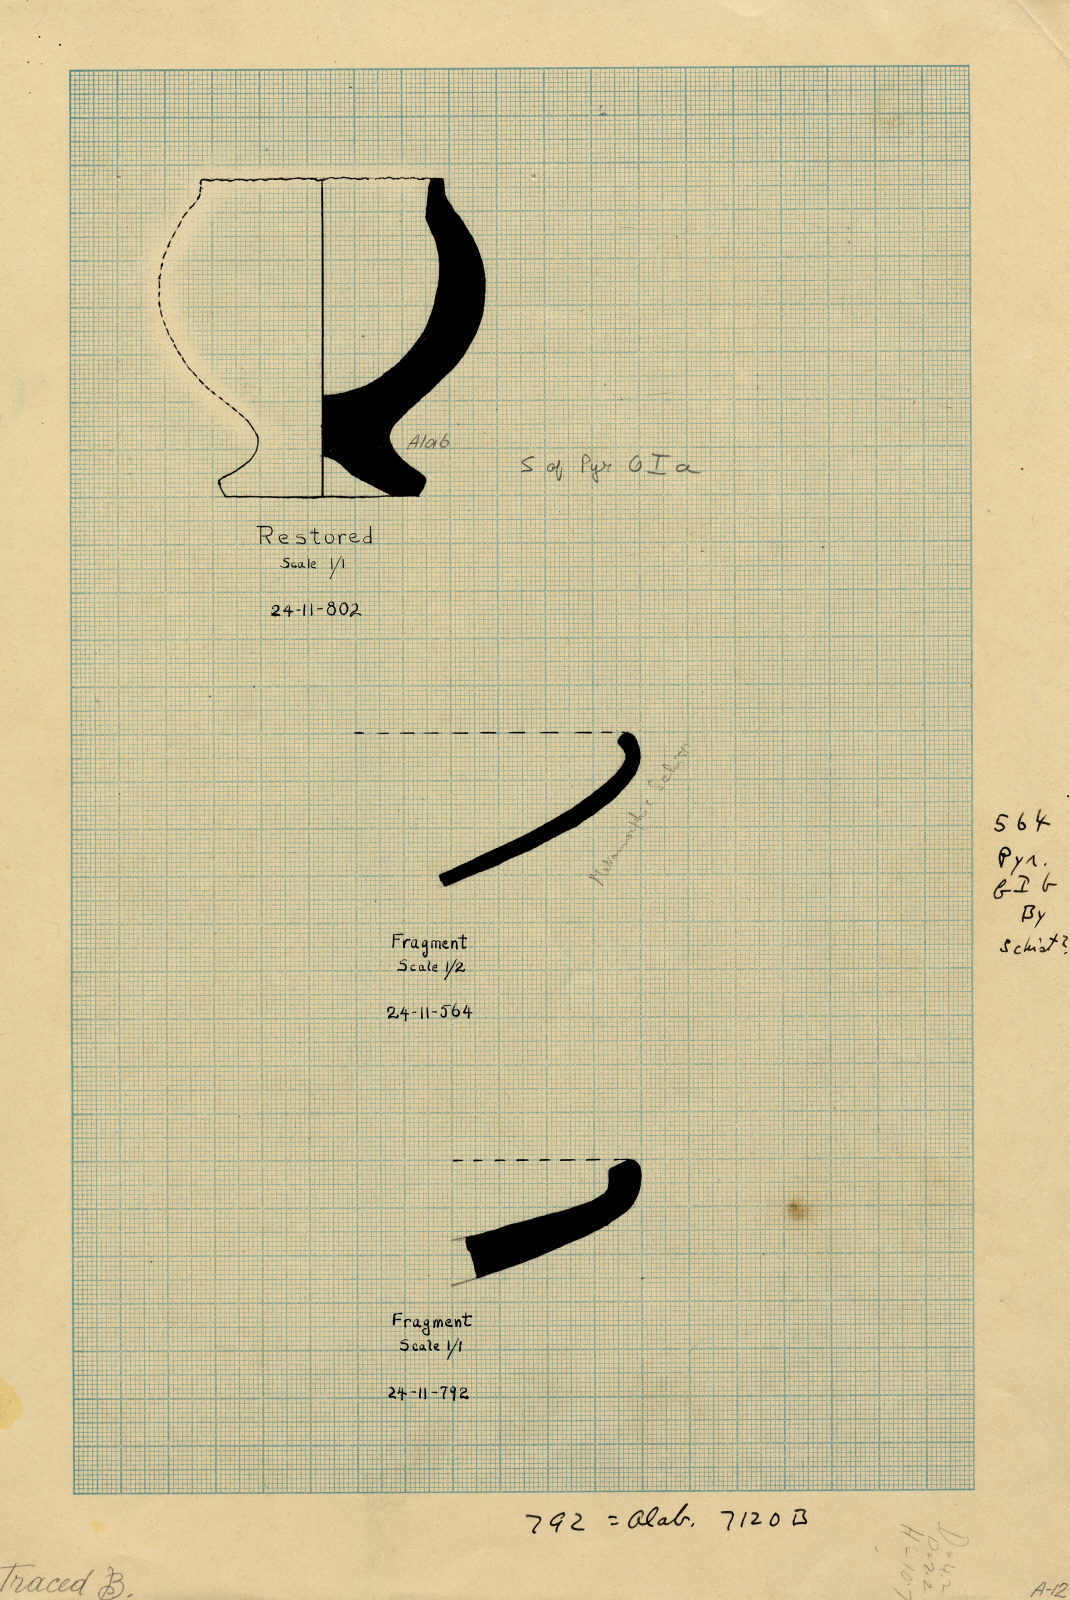 Drawings: Objects from Avenue G 1, S of G I-a; Avenue G 1, N of G I-b; near G 7120